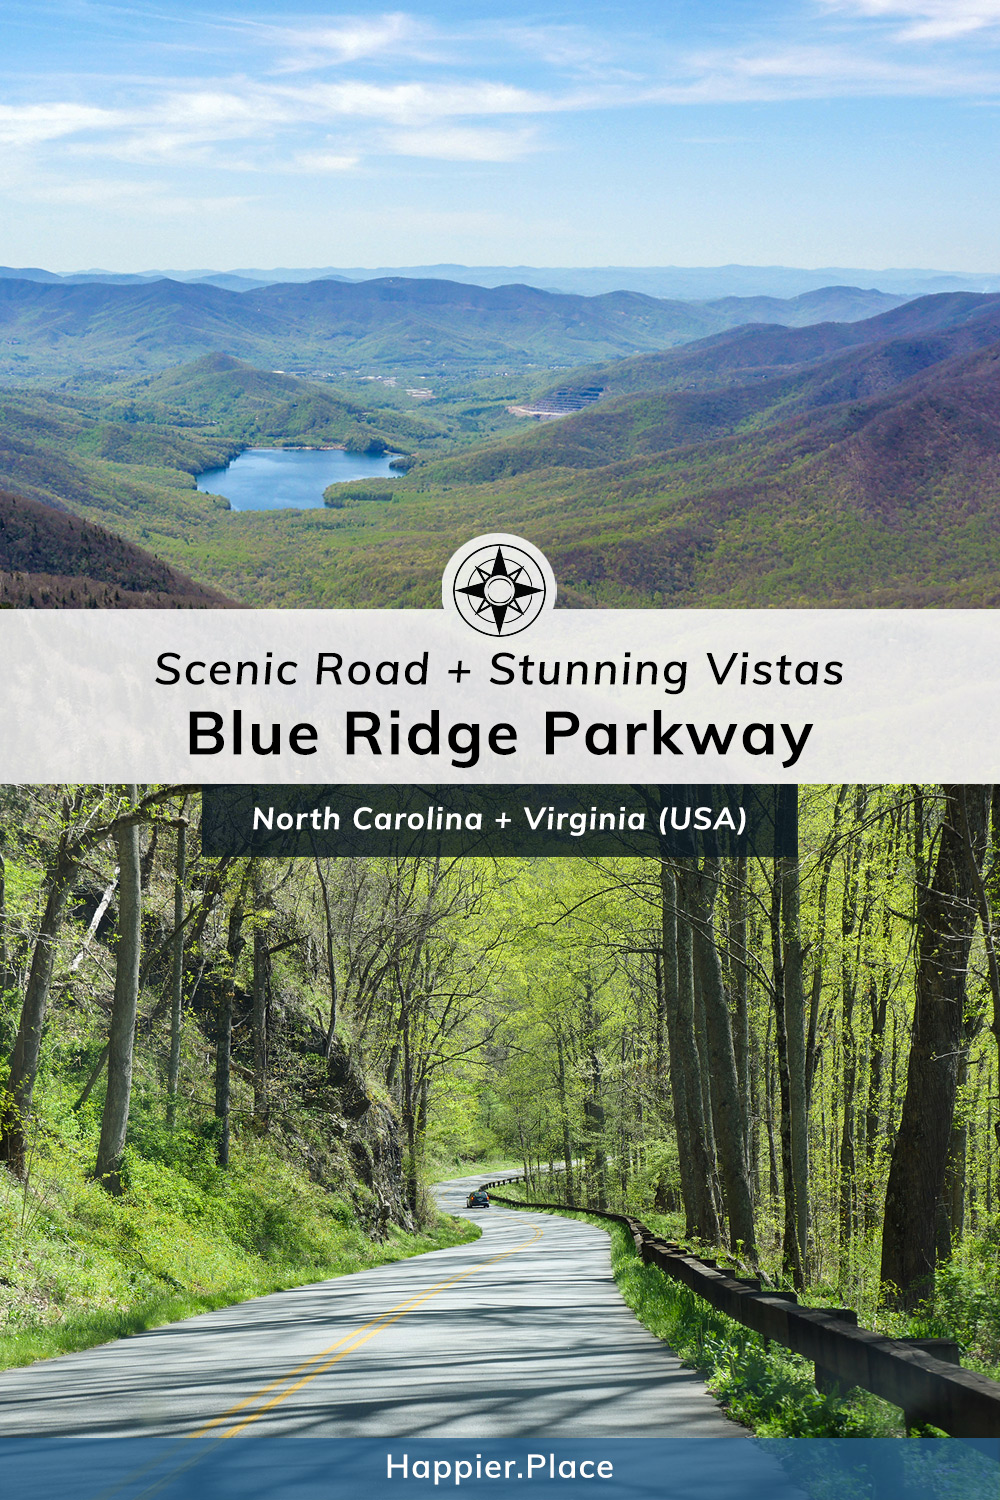 Scenic Road and Stunning Vistas: Blue Ridge Parkway - from Virginia to North Carolina.